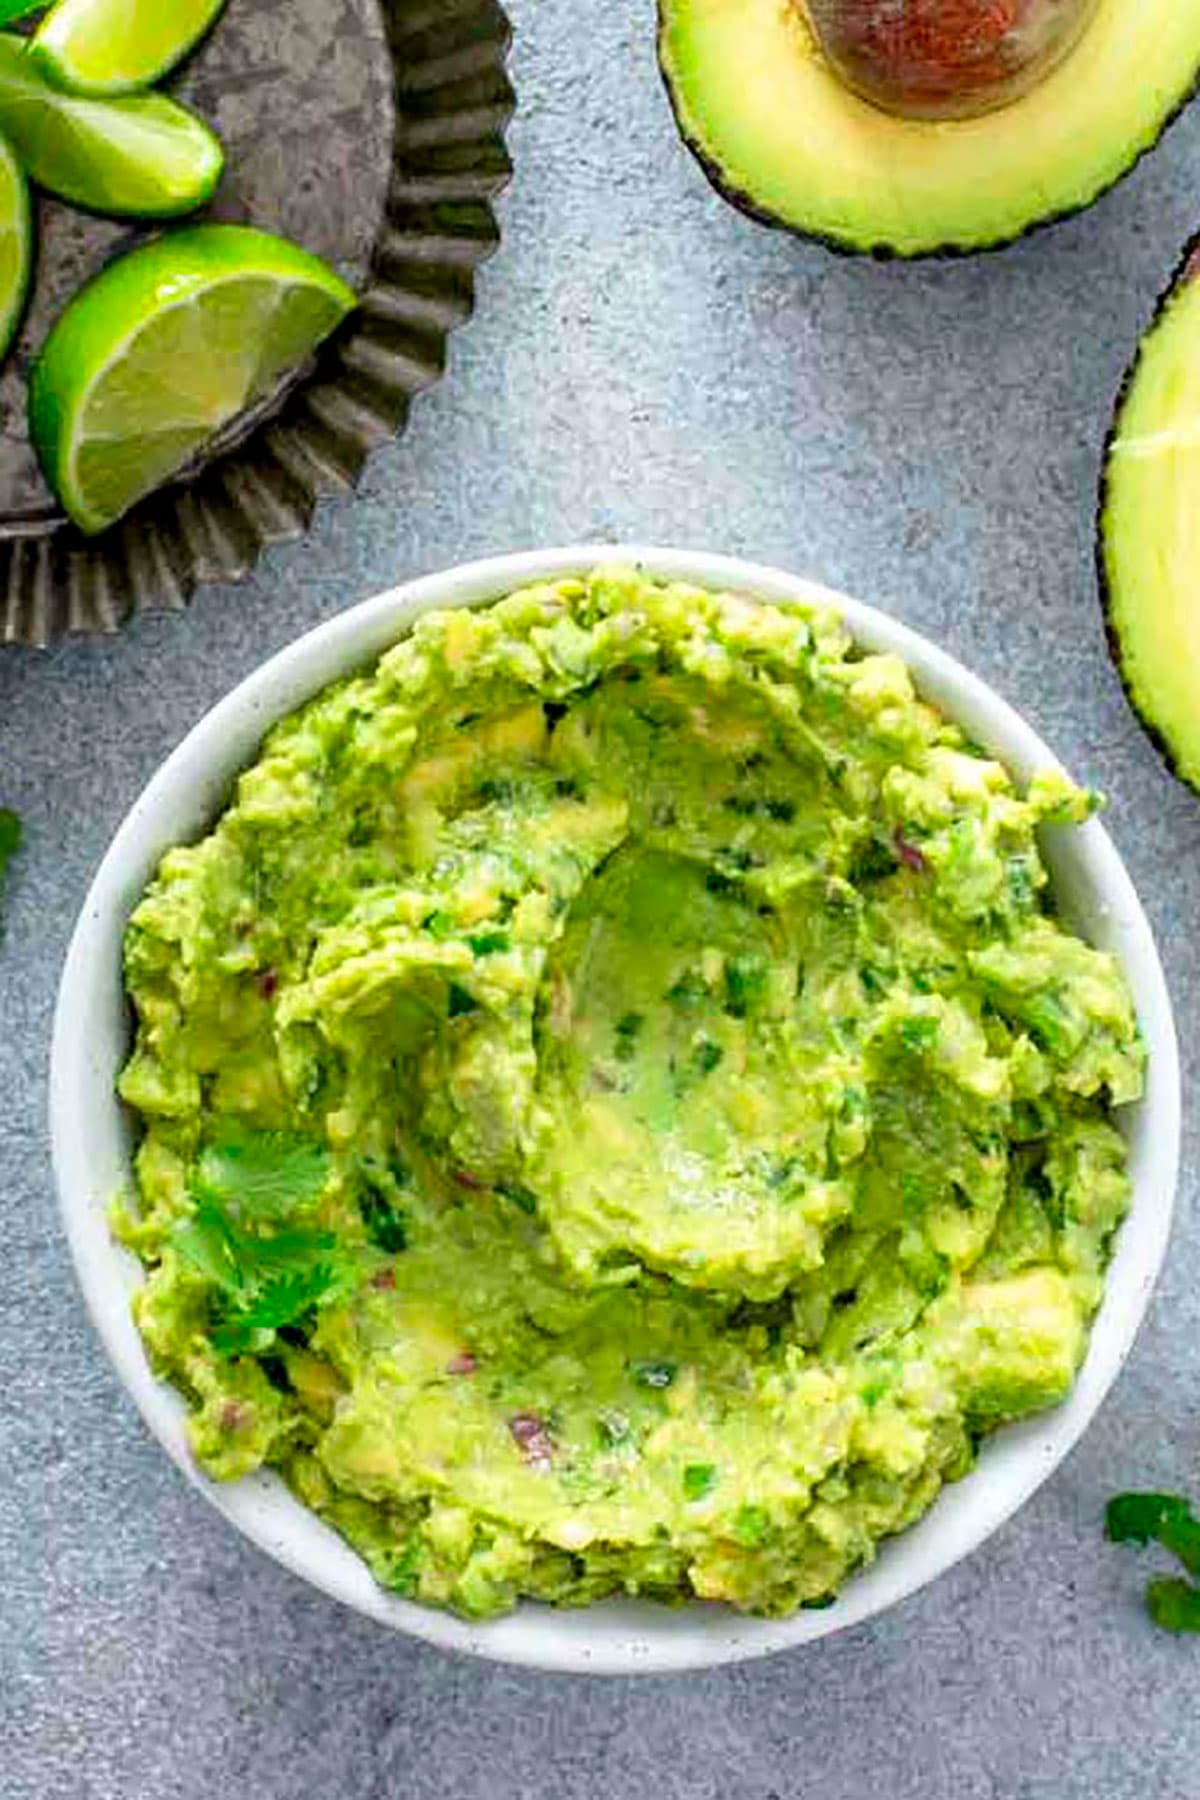 Top view of a bowl filled with guacamole